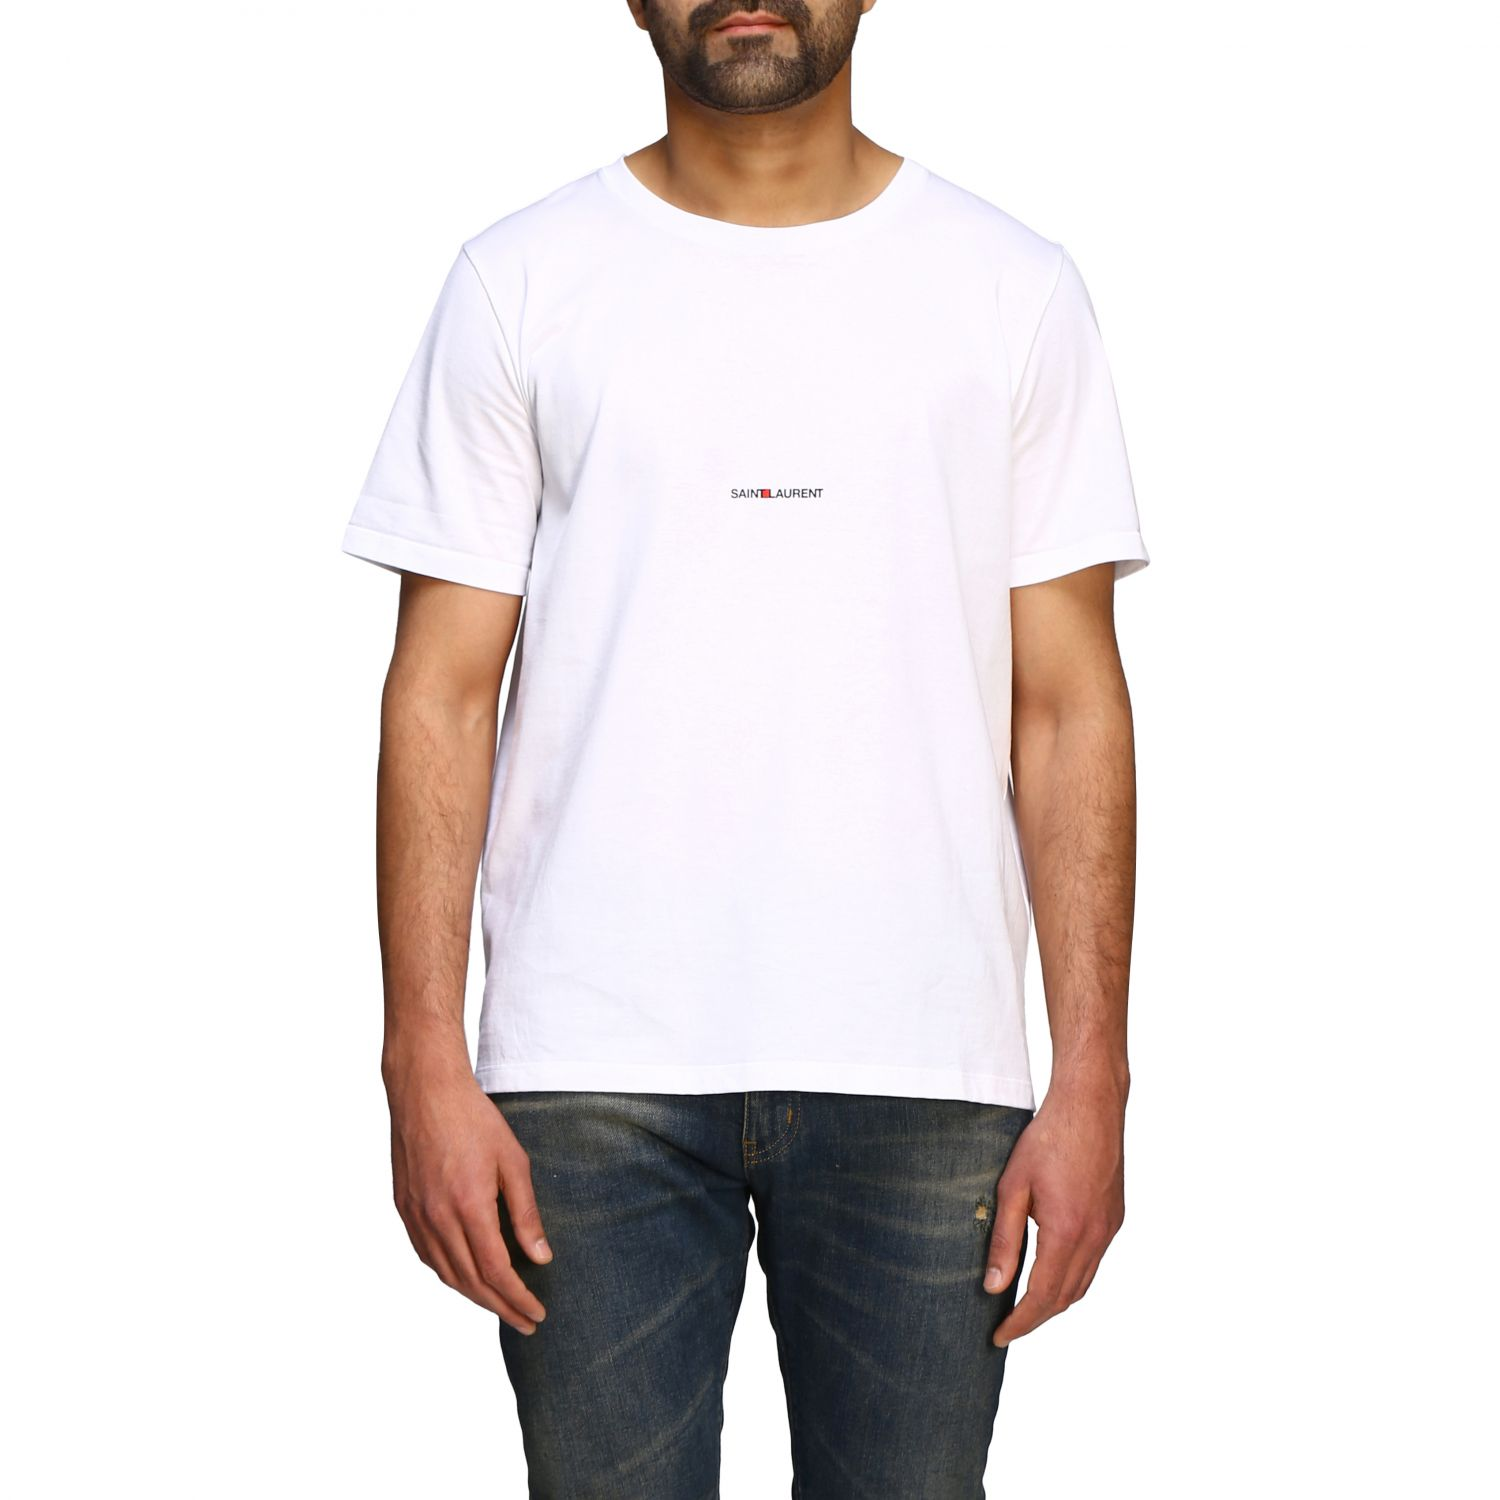 Saint Laurent T-Shirt mit Mini Logo weiß 1